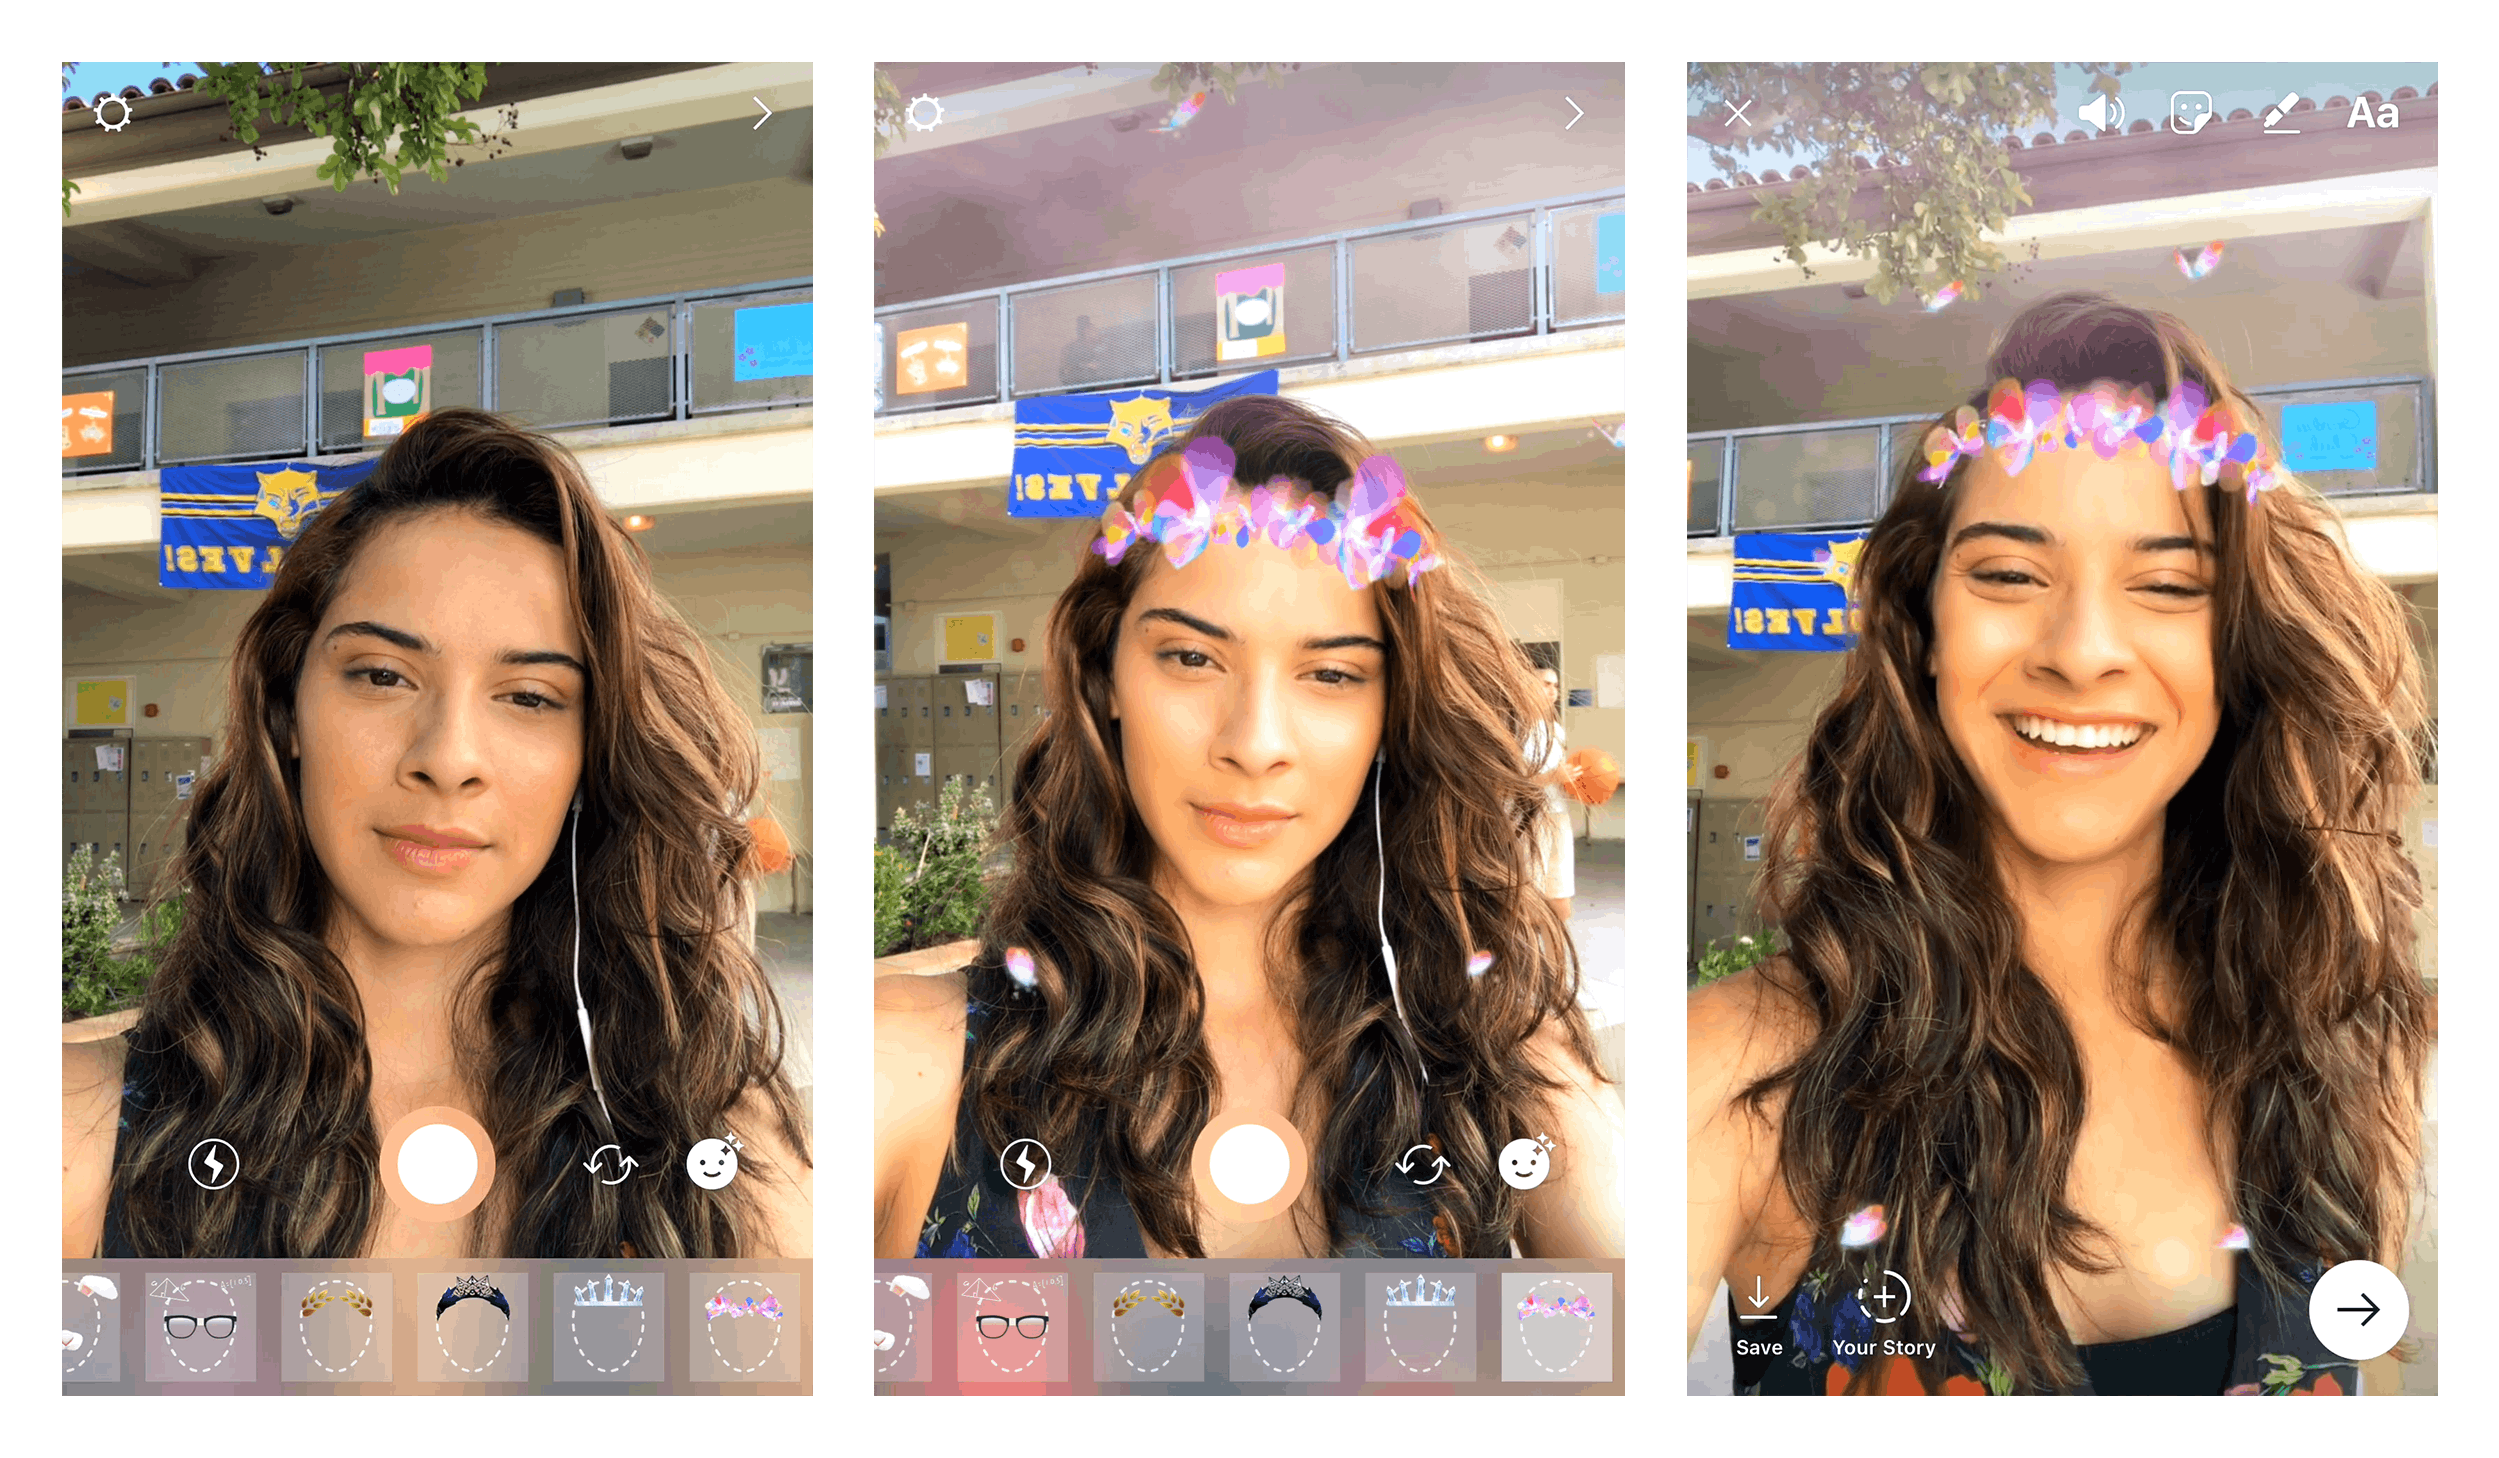 Instagram Copies Snapchat Once Again With Face Filters